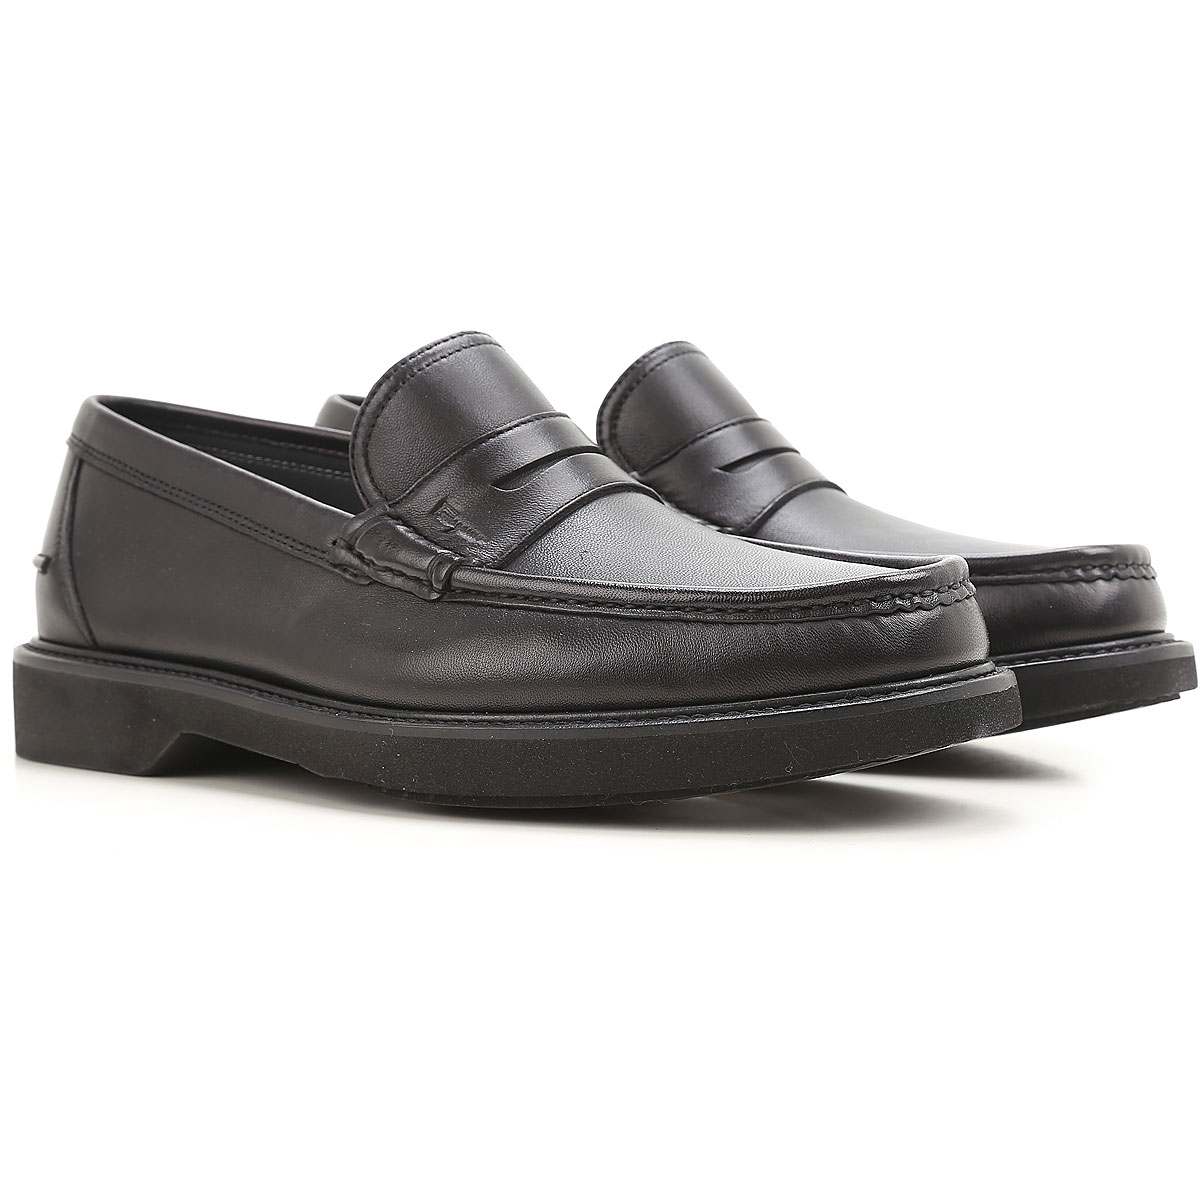 Image of Salvatore Ferragamo Loafers for Men On Sale in Outlet, Black, Leather, 2017, 11.5 12 7 7.5